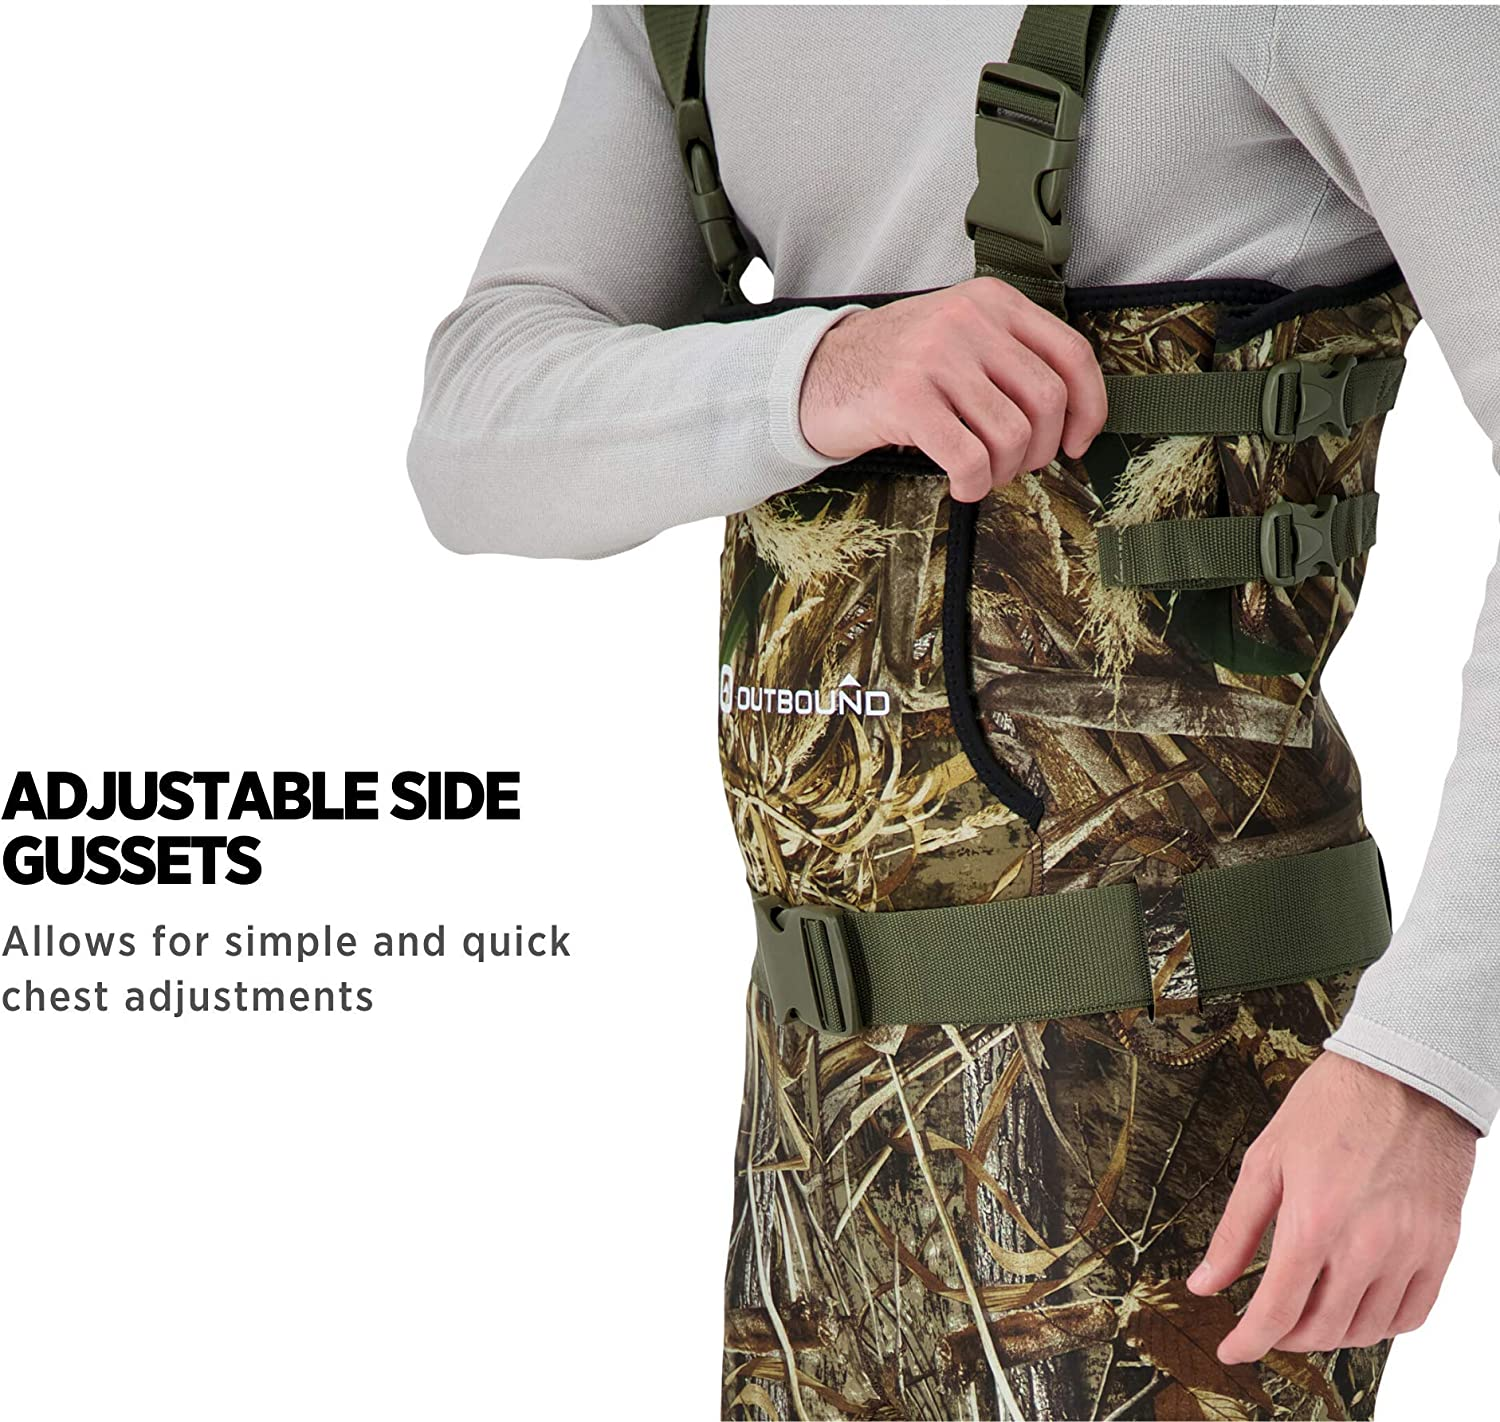 Real Tree Max-5 OUTBOUND Neoprene Chest Waders with Boots for Men /& Women Water-Proof Camo Fishing Waders with Belt /& Hand Warmer Pocket